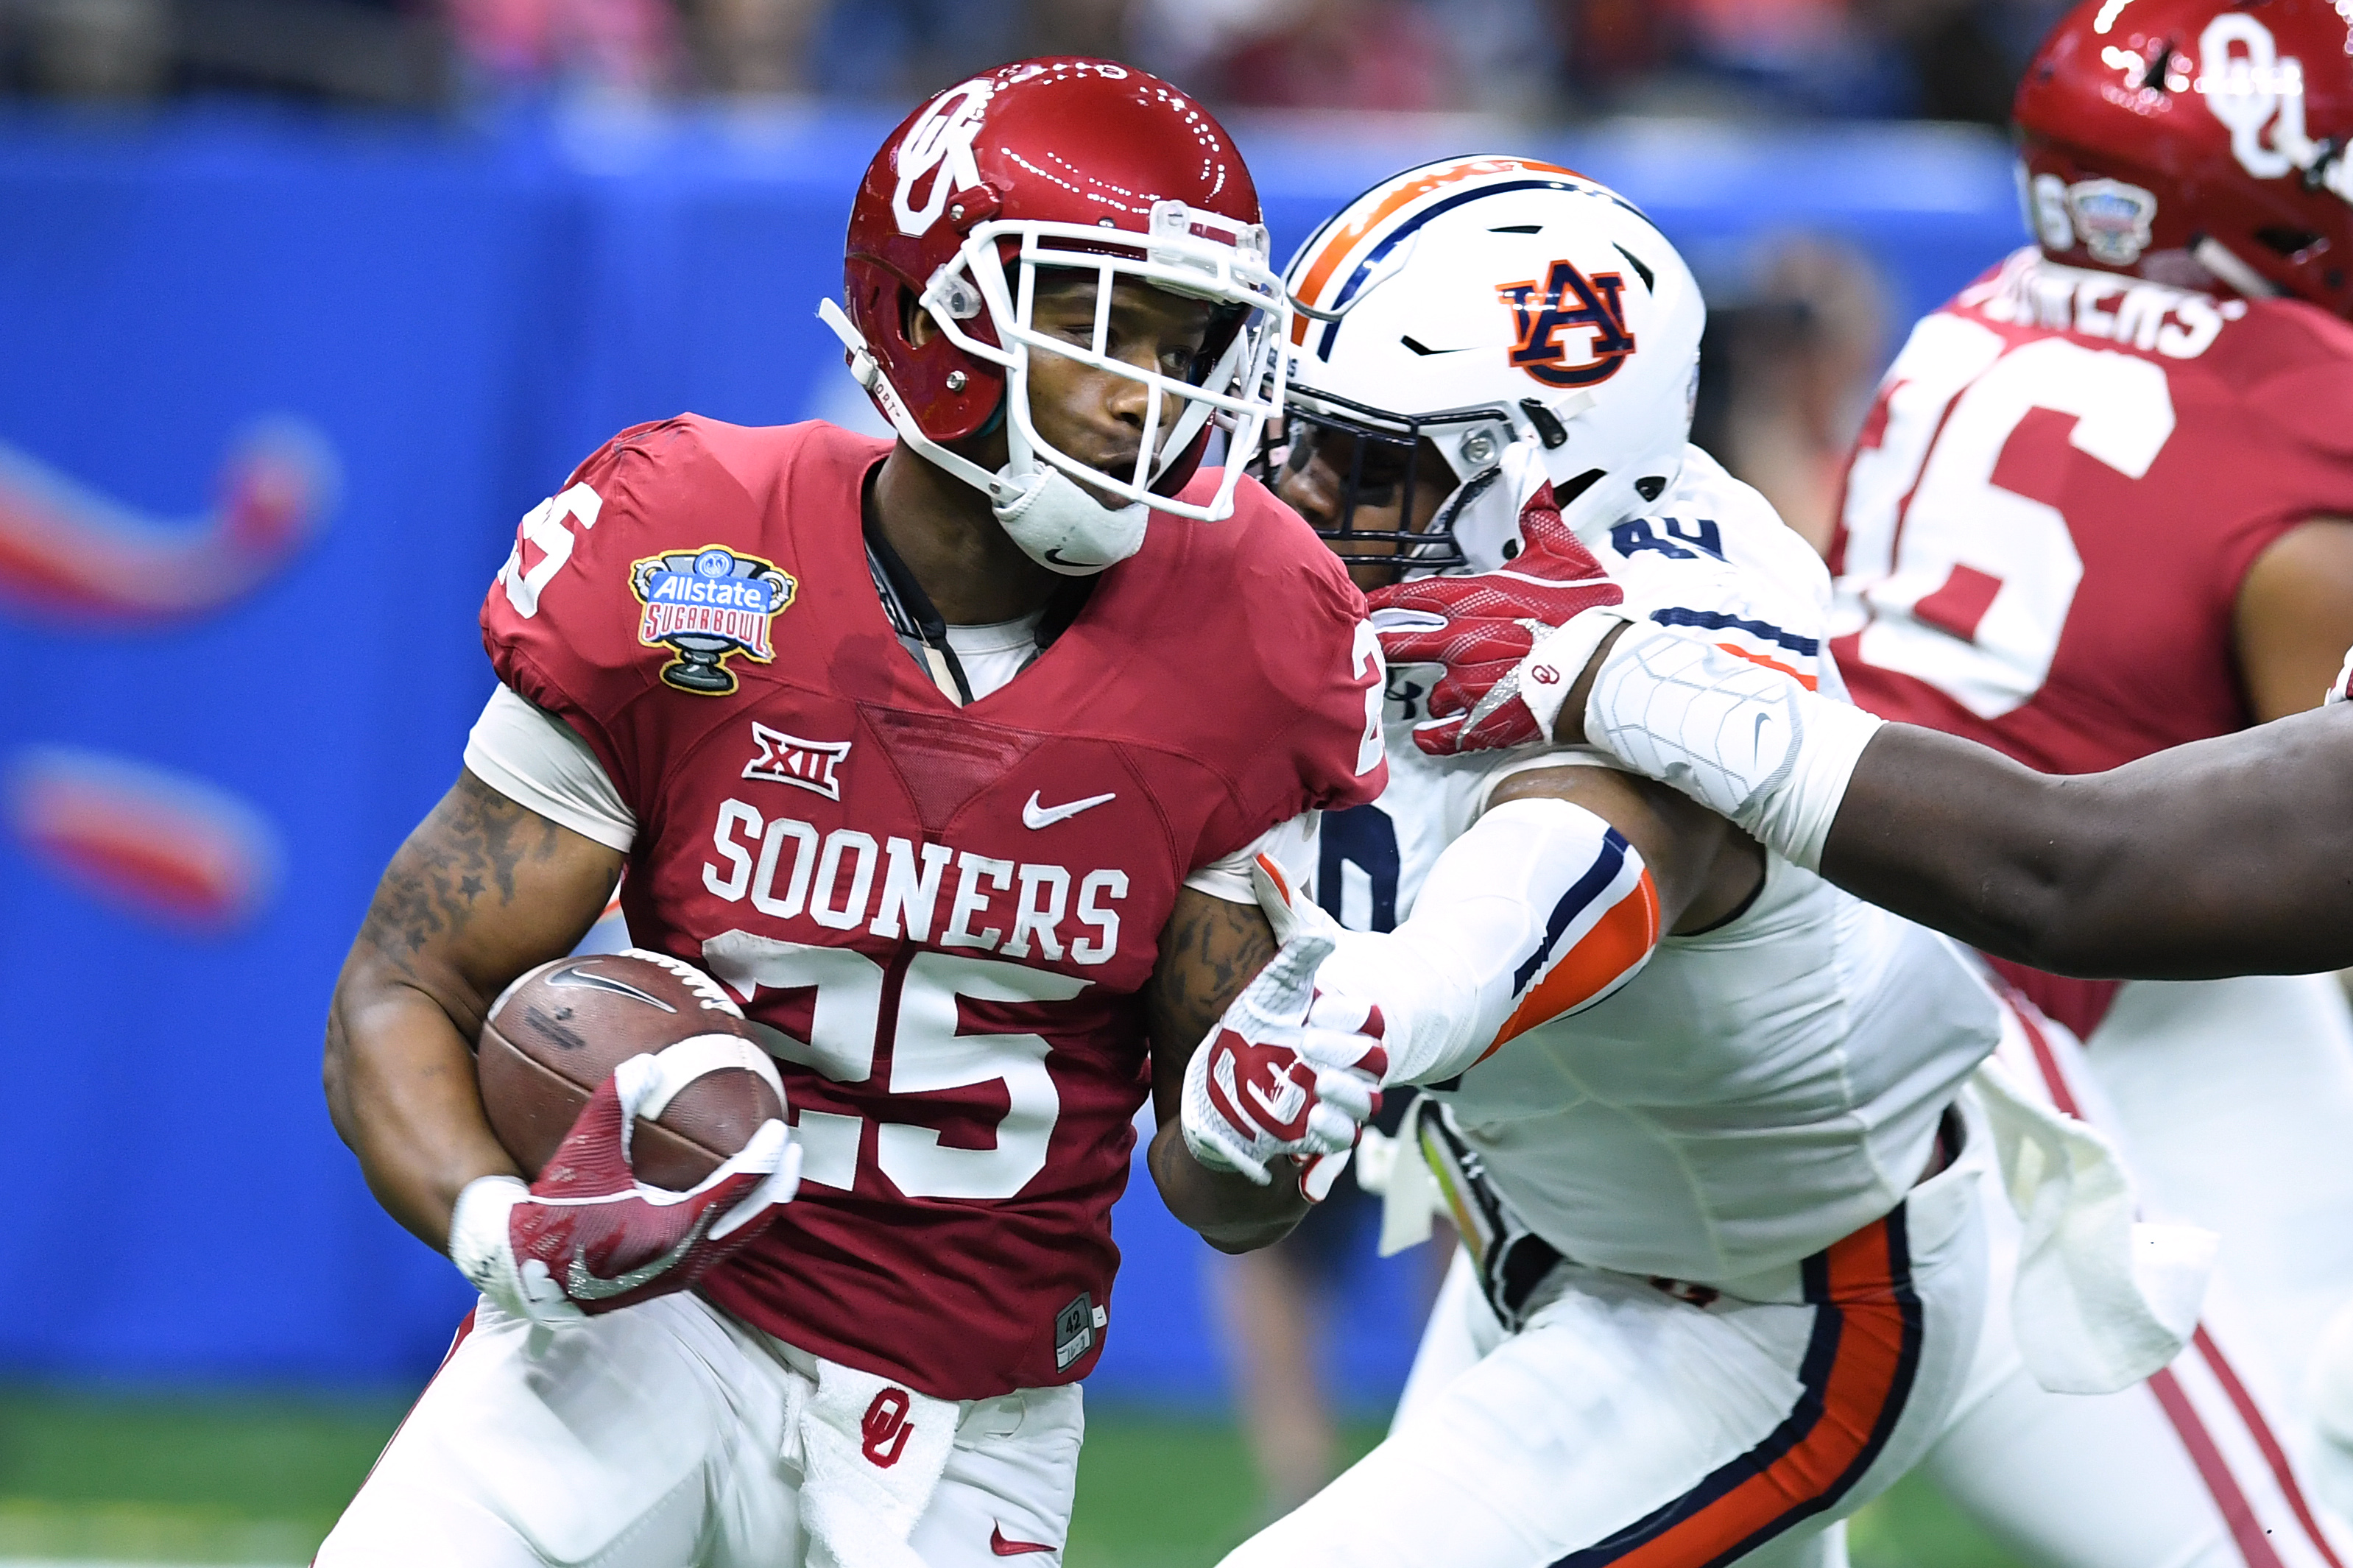 9785075-ncaa-football-sugar-bowl-auburn-vs-oklahoma